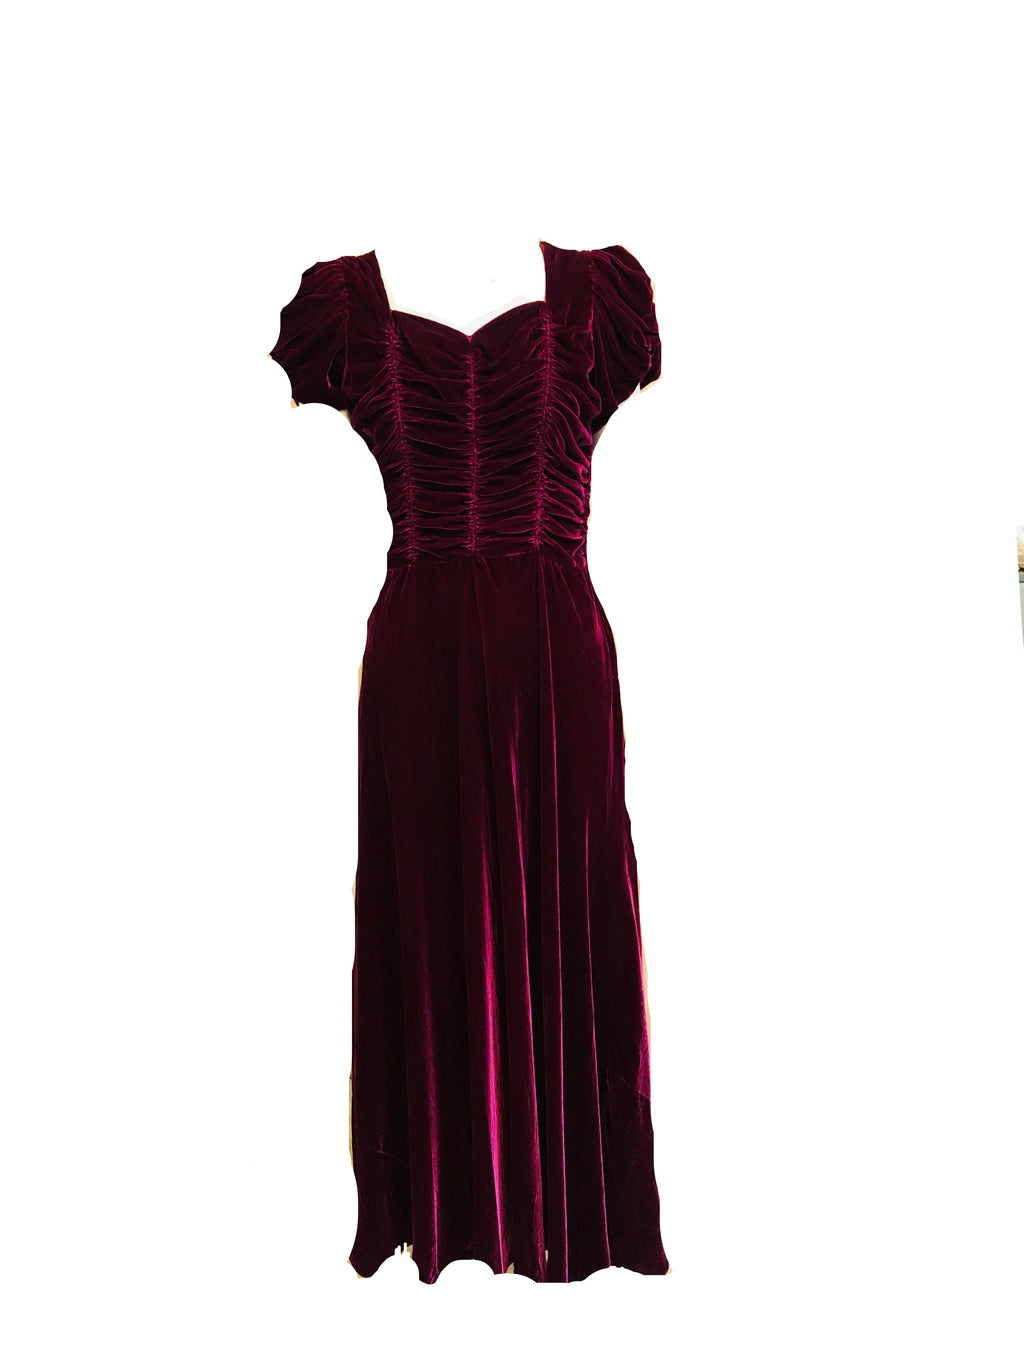 30s Gown Burgundy Velvet with Ruched Bodice  FRONT 1 of 3